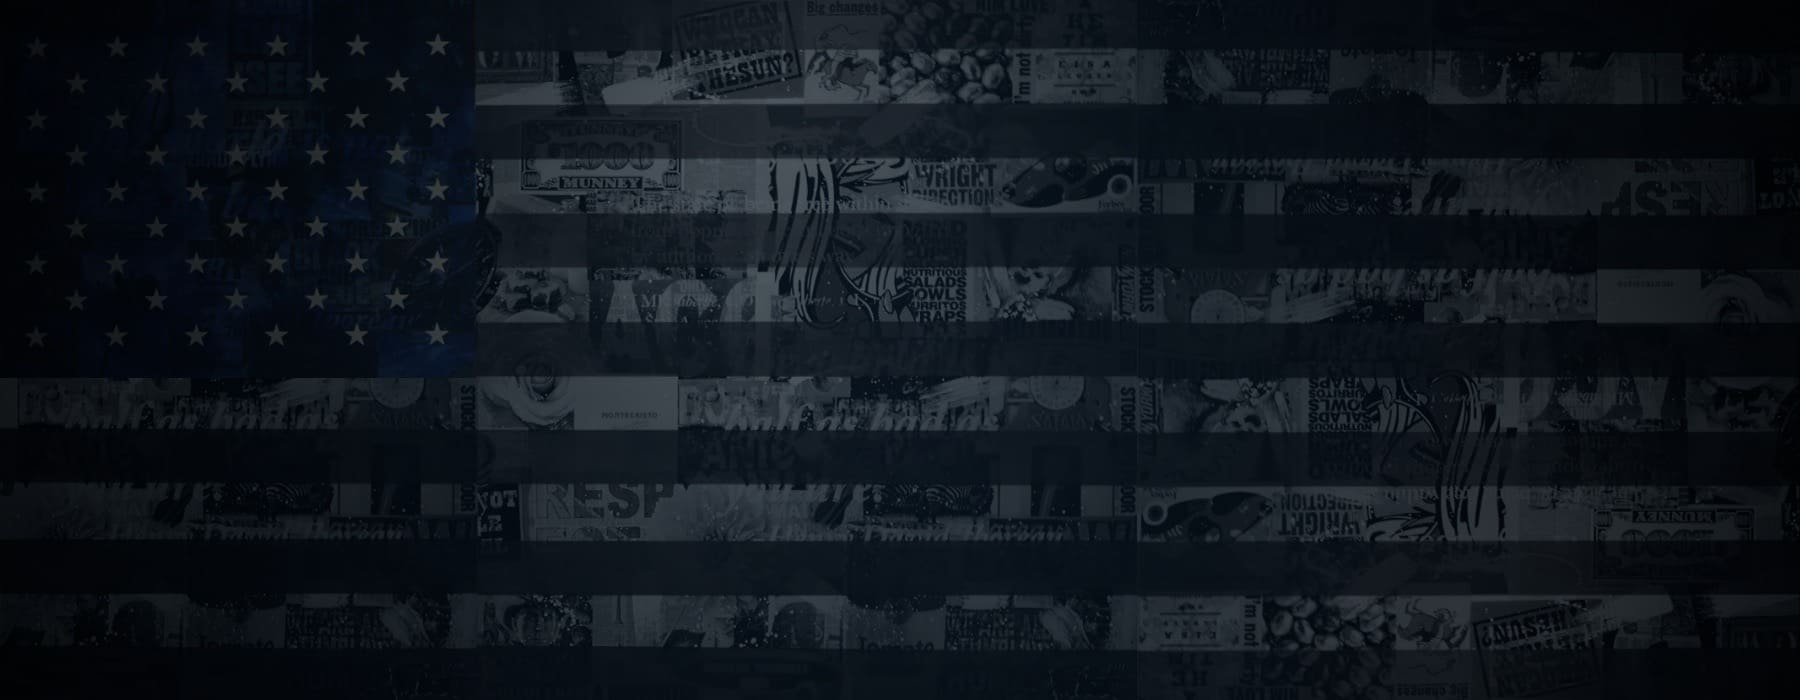 American Flag Image in dark black and blue tones and rich graphic icons embedded in the art